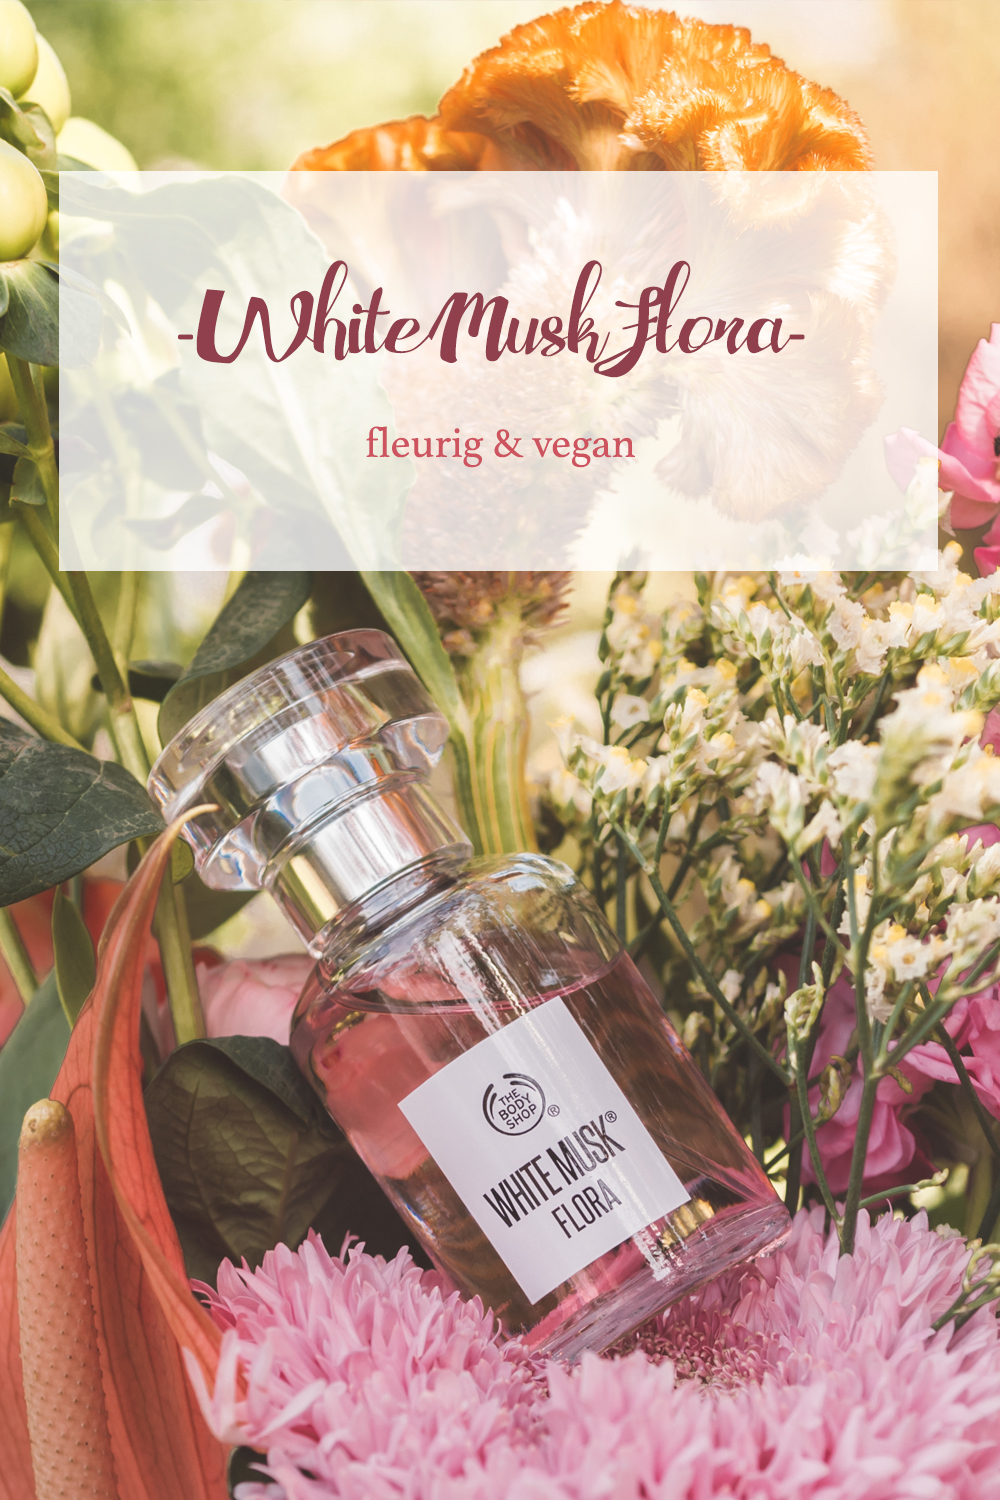 White Musk Flora The Body Shop Vegan parfum